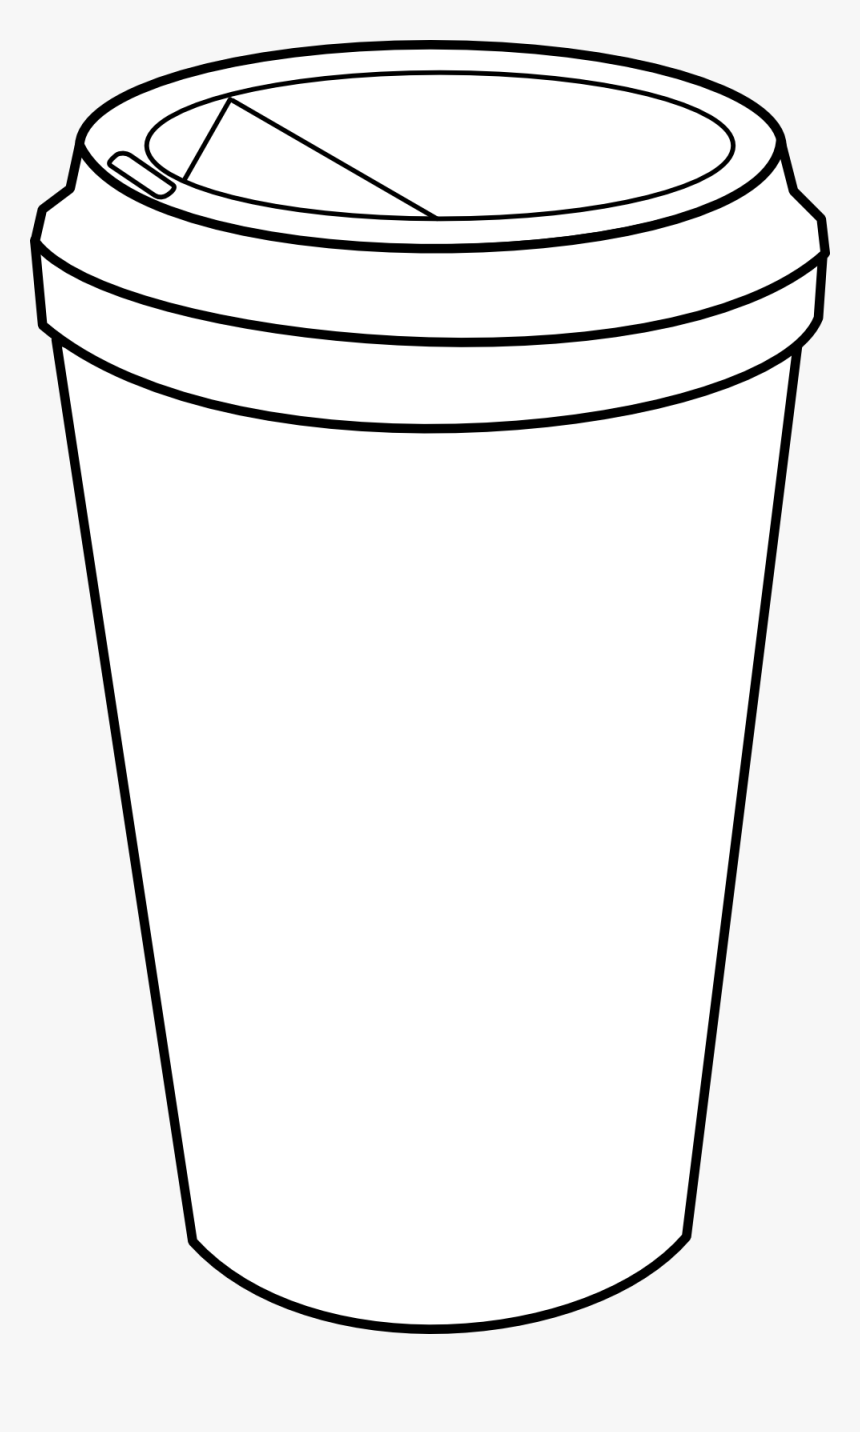 cup coloring page coffee shop clipart cute coffee cup coloring pages hd coloring page cup